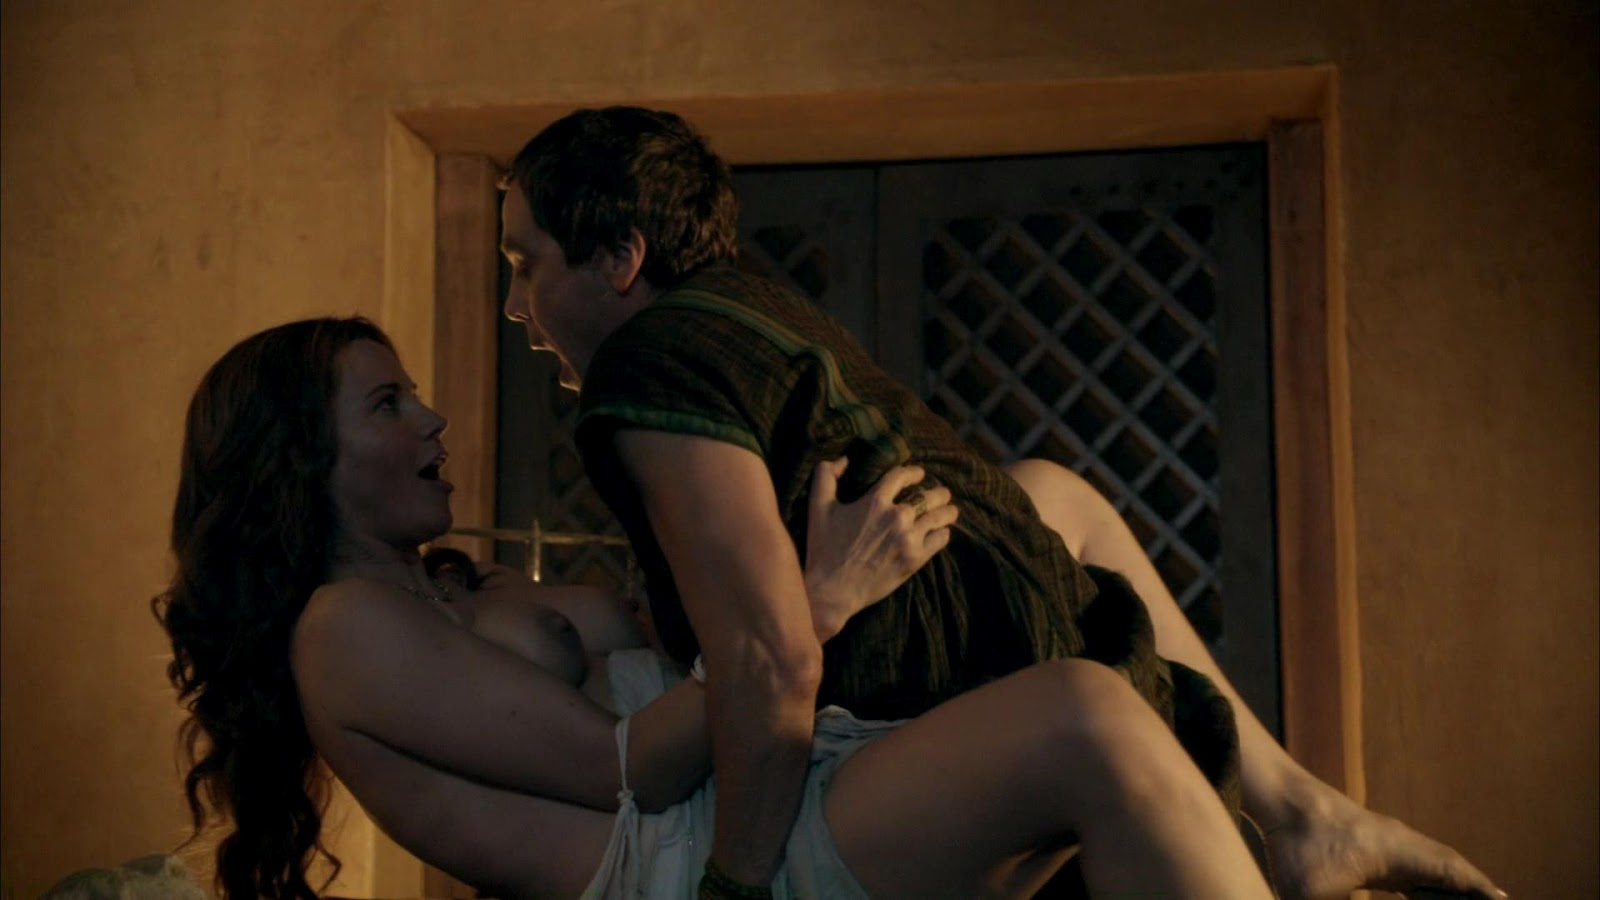 Lucy Lawless Hot Scenes From Spartacus Hd Video Nsfw